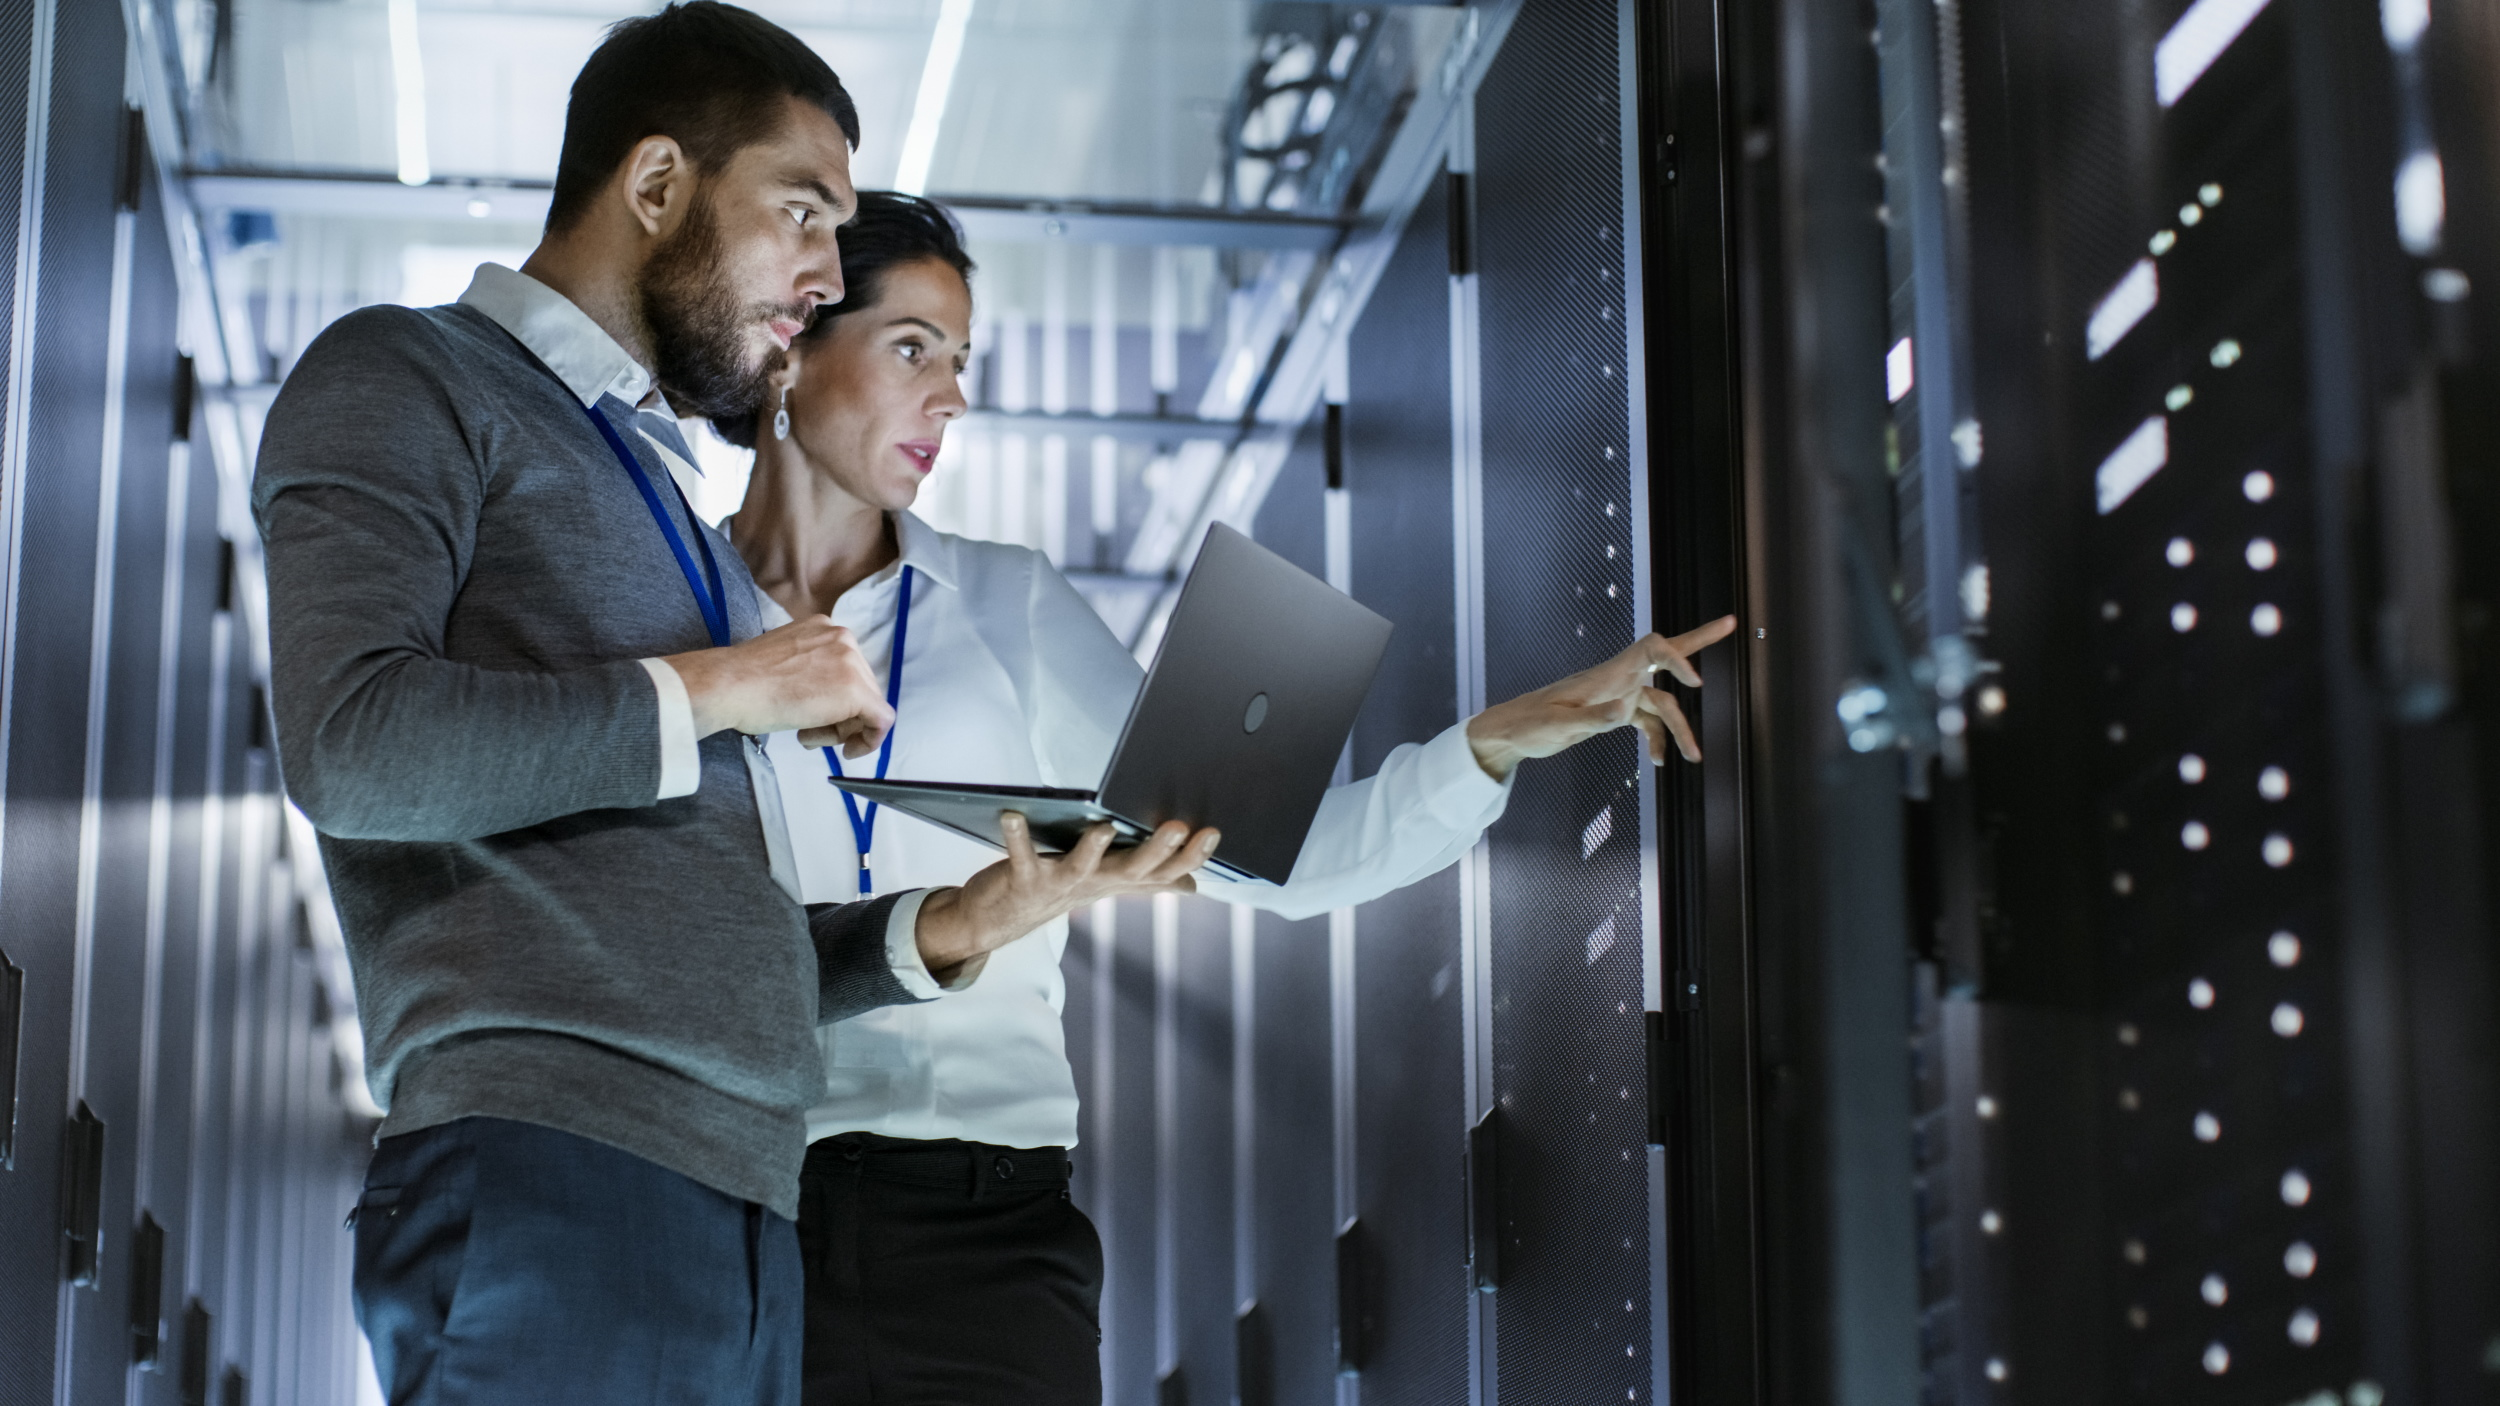 Two engineers dealing with network management issues at a server rack in a data center